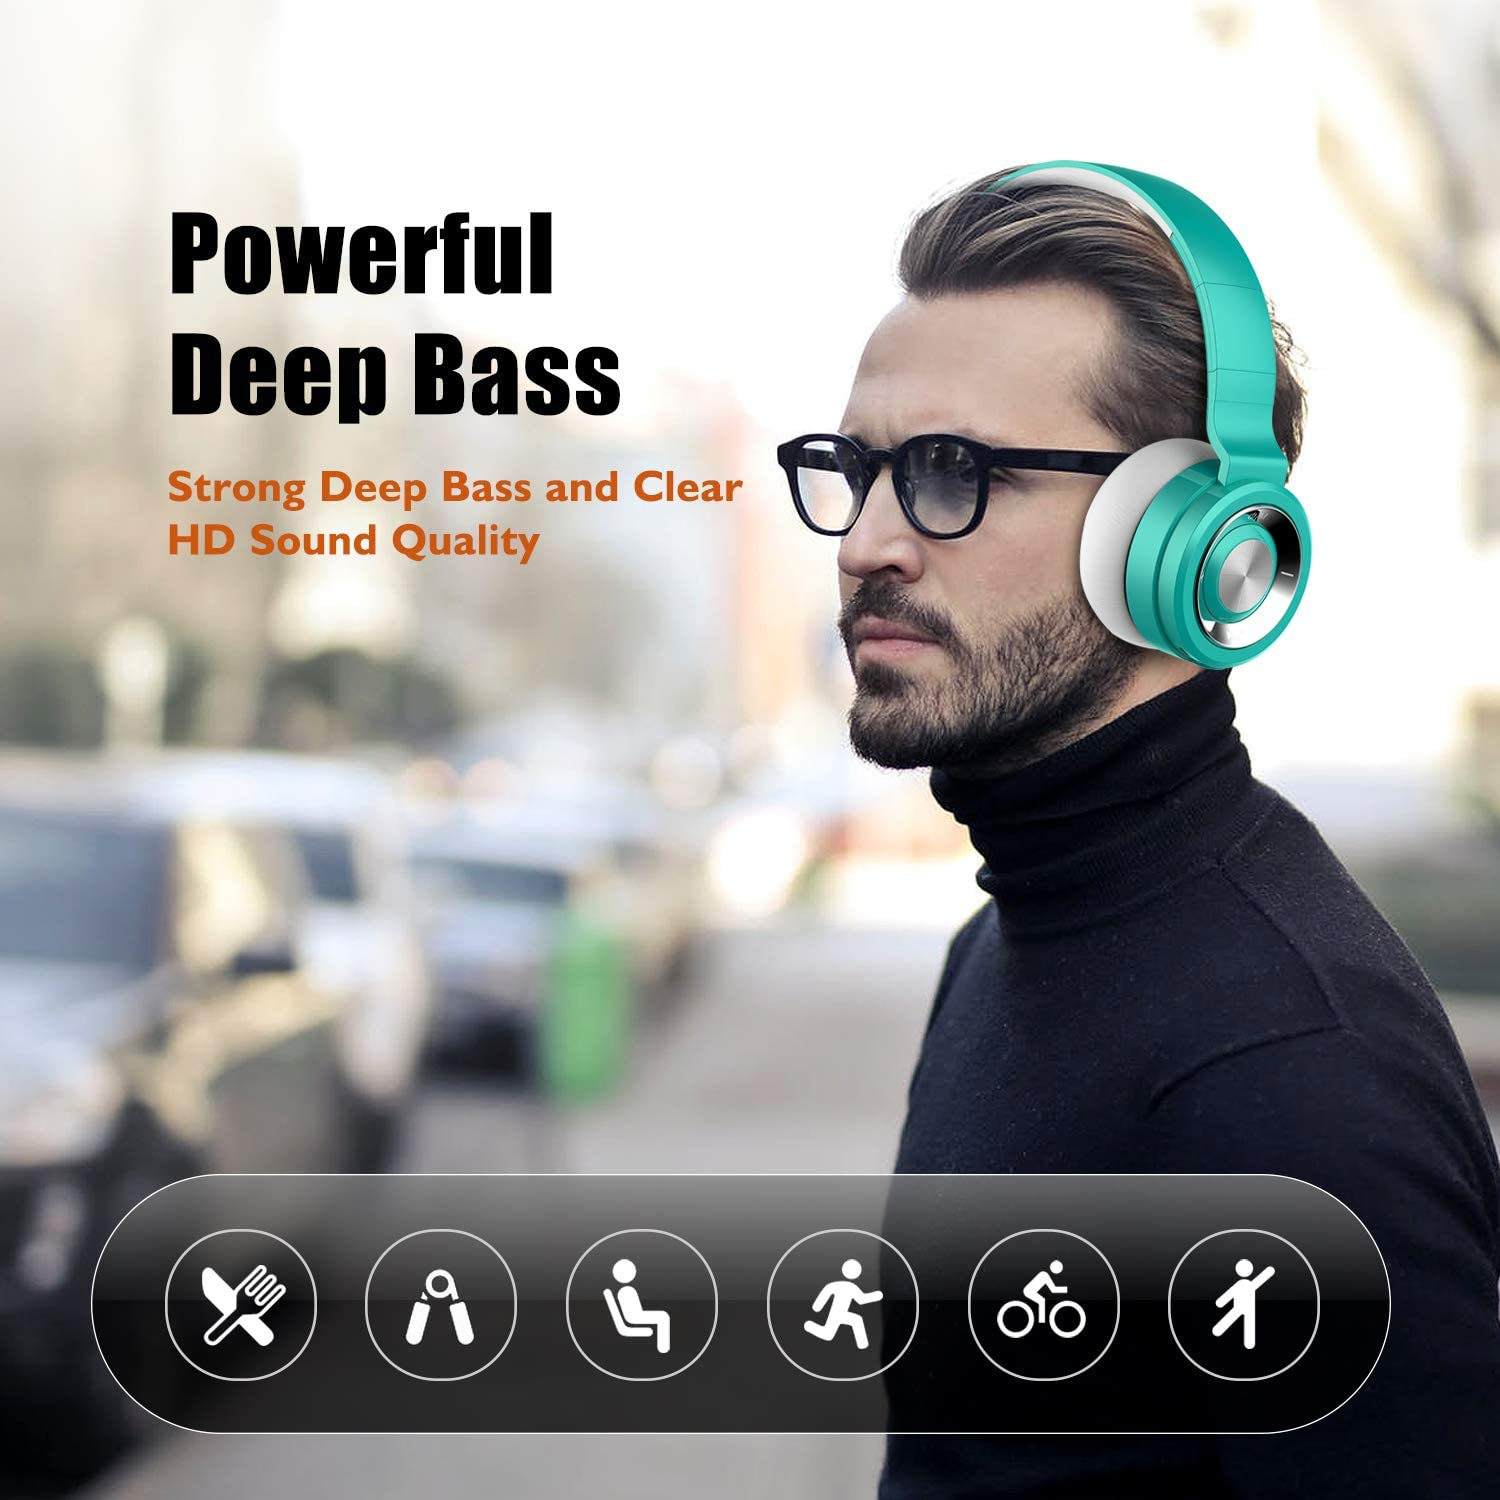 Built-in Mic & Wired Mode for TV//PC//Phone Soft Memory Protein Earmuffs Black Bluetooth Headphones Over Ear,Wireless Headphones with Mic,Funwaretech Foldable Hi-Fi Stereo Bass Headphones